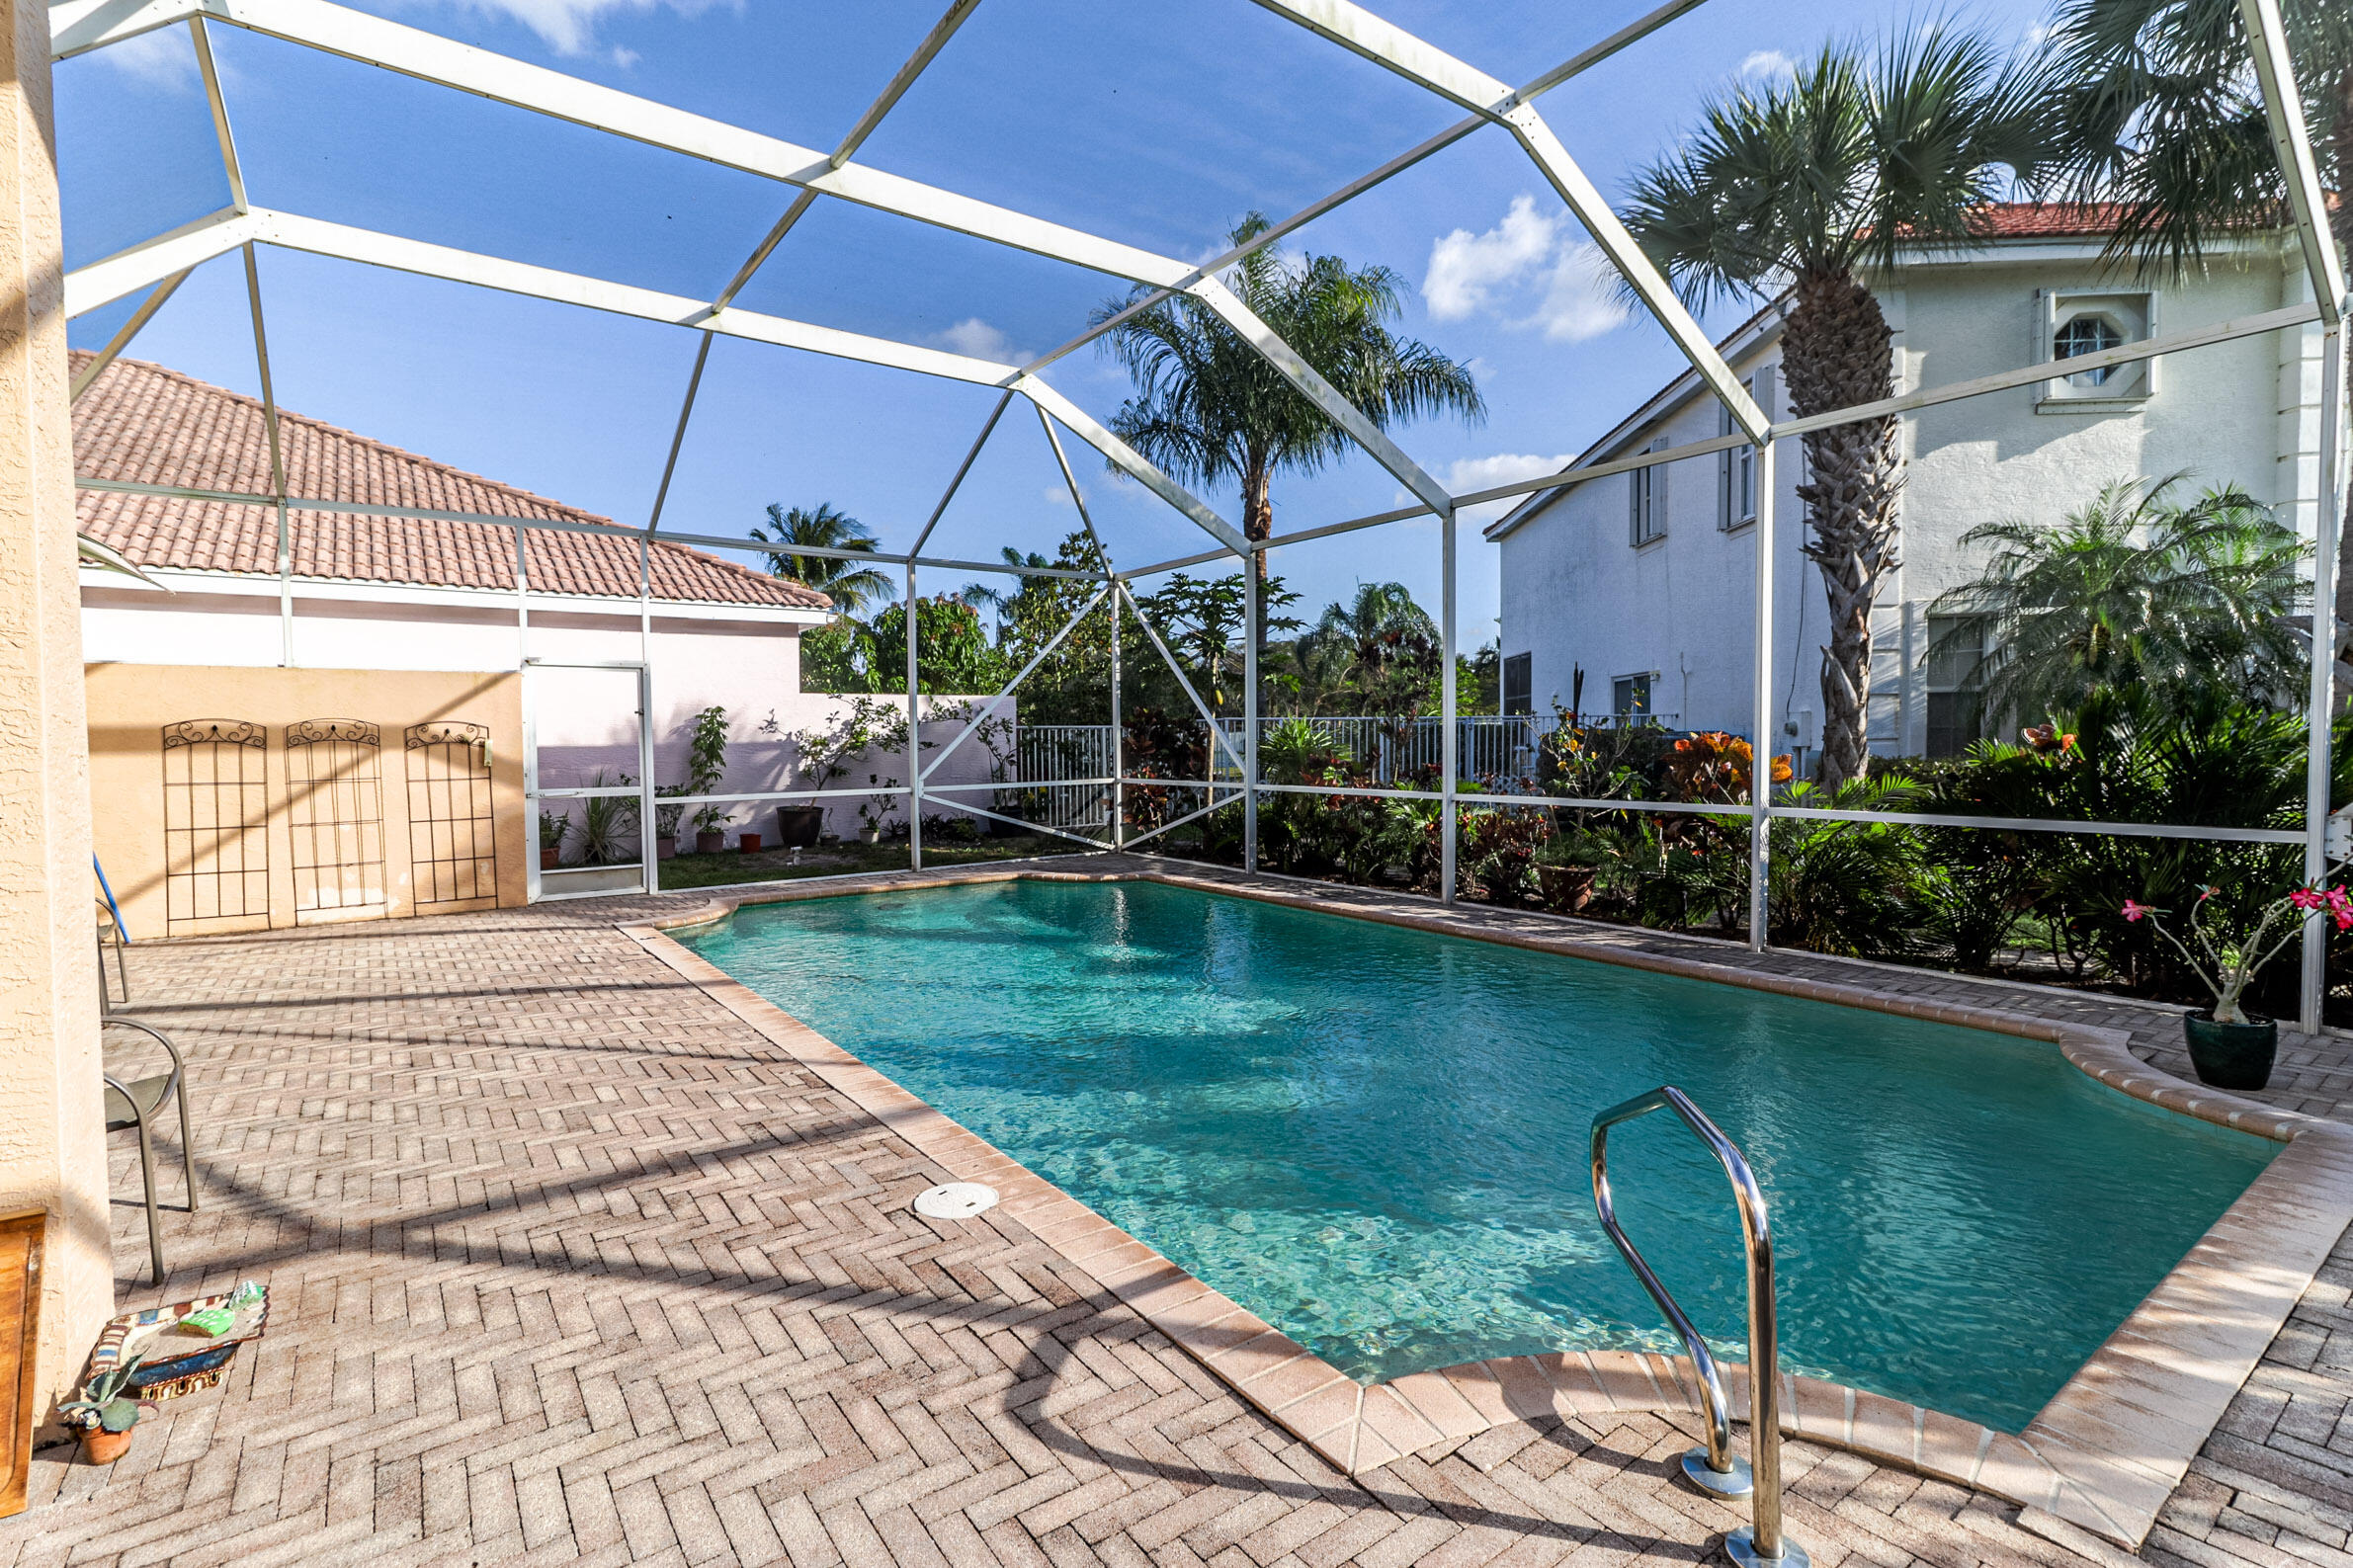 3048 El Camino Real West Palm Beach, FL 33409 small photo 1